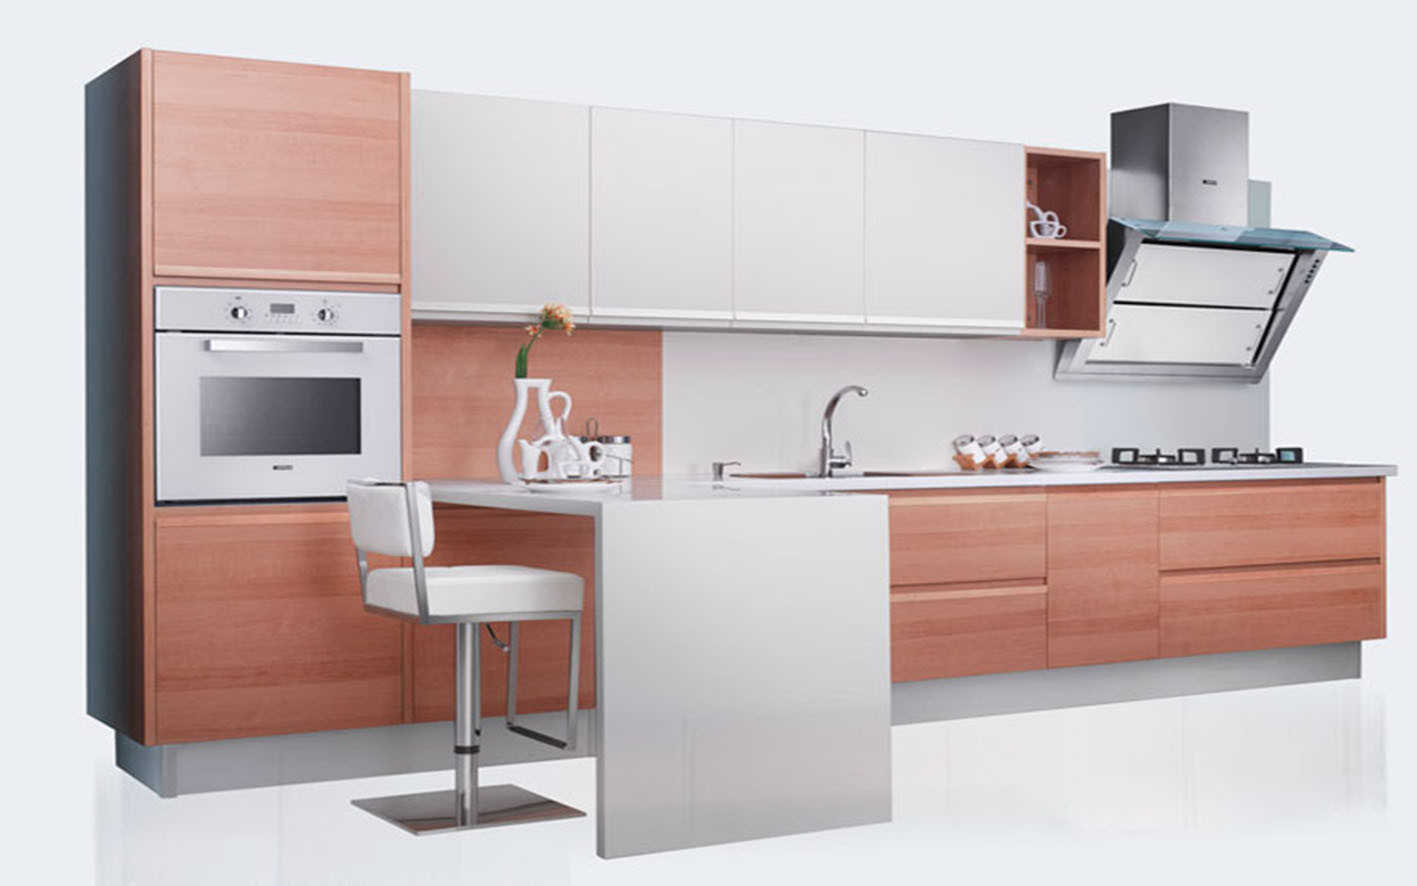 Wood Grain Melamine Finish Laminate MFC Kitchen Furniture (zg-042)